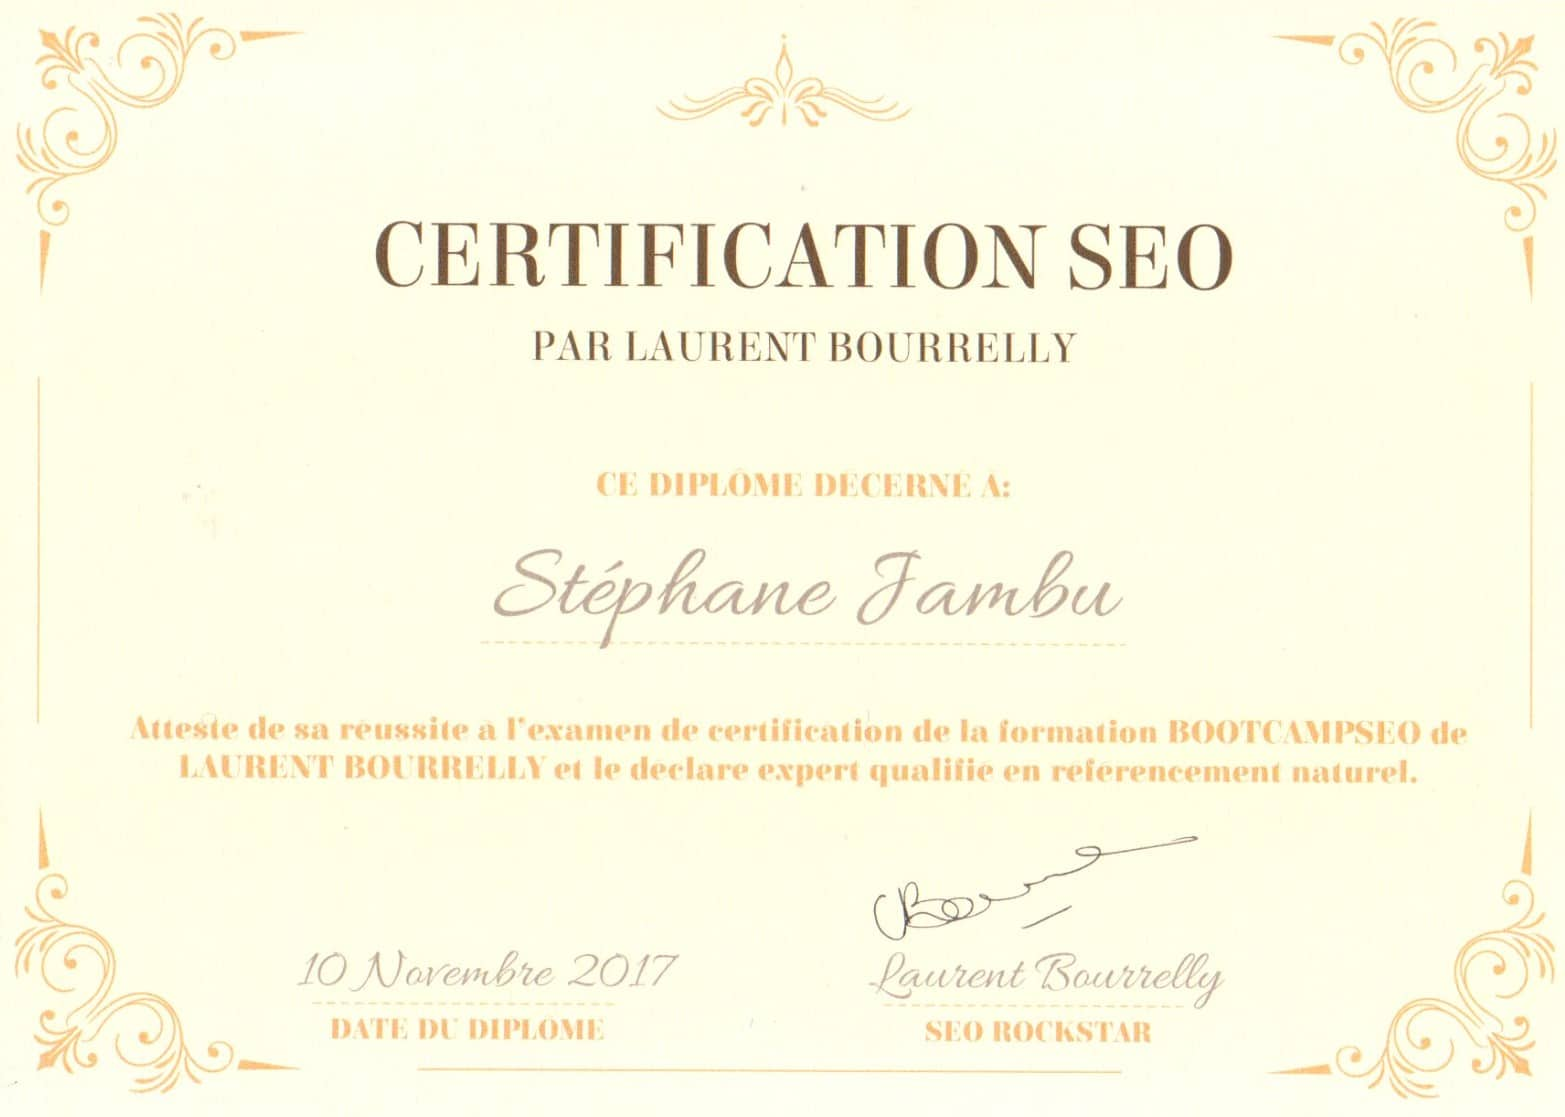 Certification Laurent Bourrelly - BootCampSEO